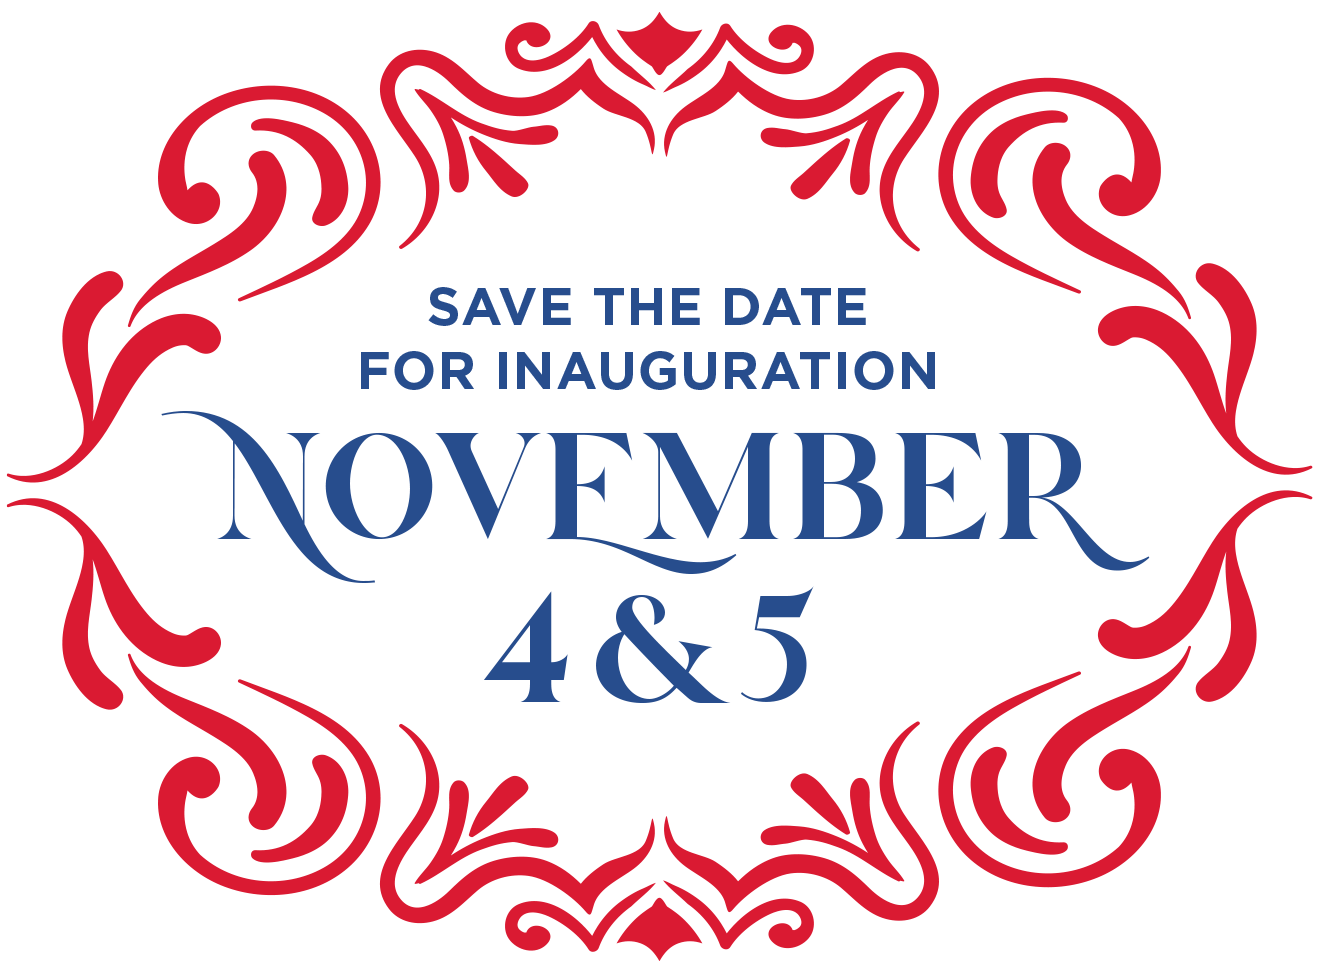 Save the Date for the Inauguration, November 4 & 5